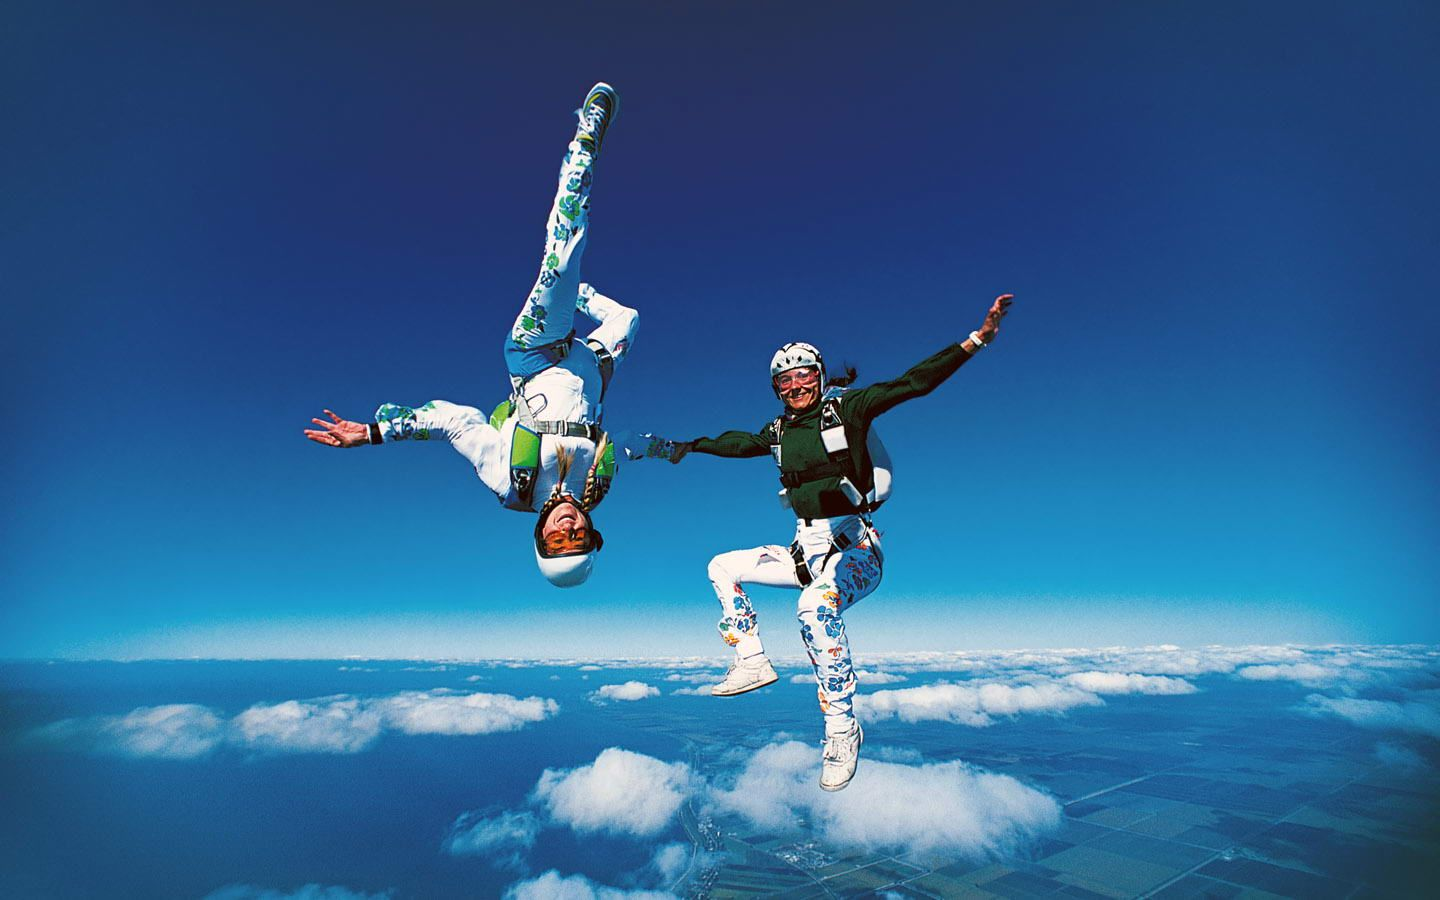 Facebook Skydiving Extreme Sports Outdoors Adventure